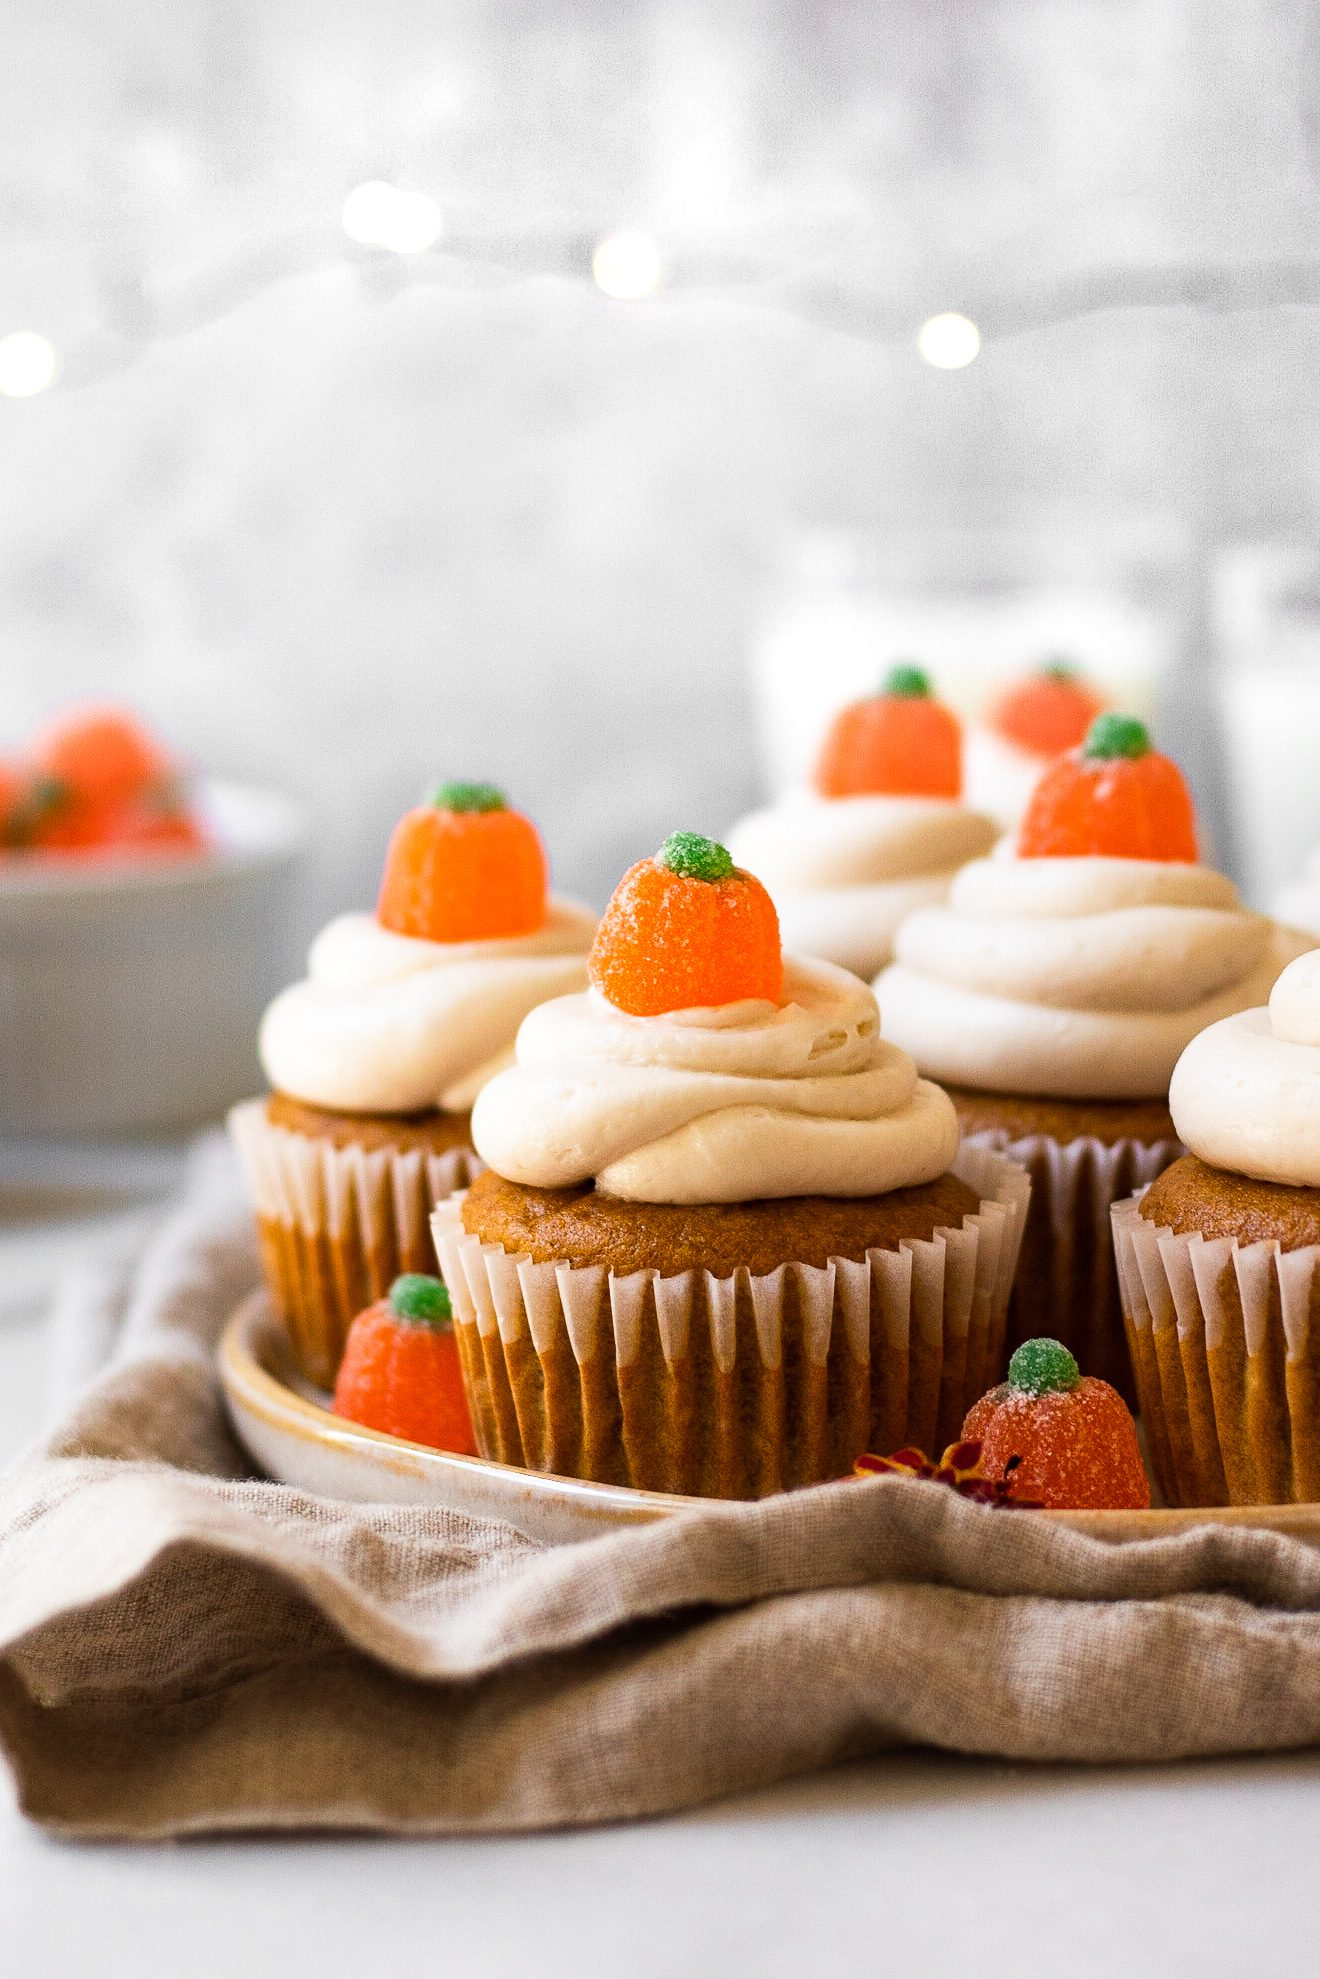 cupcakes on serving dish